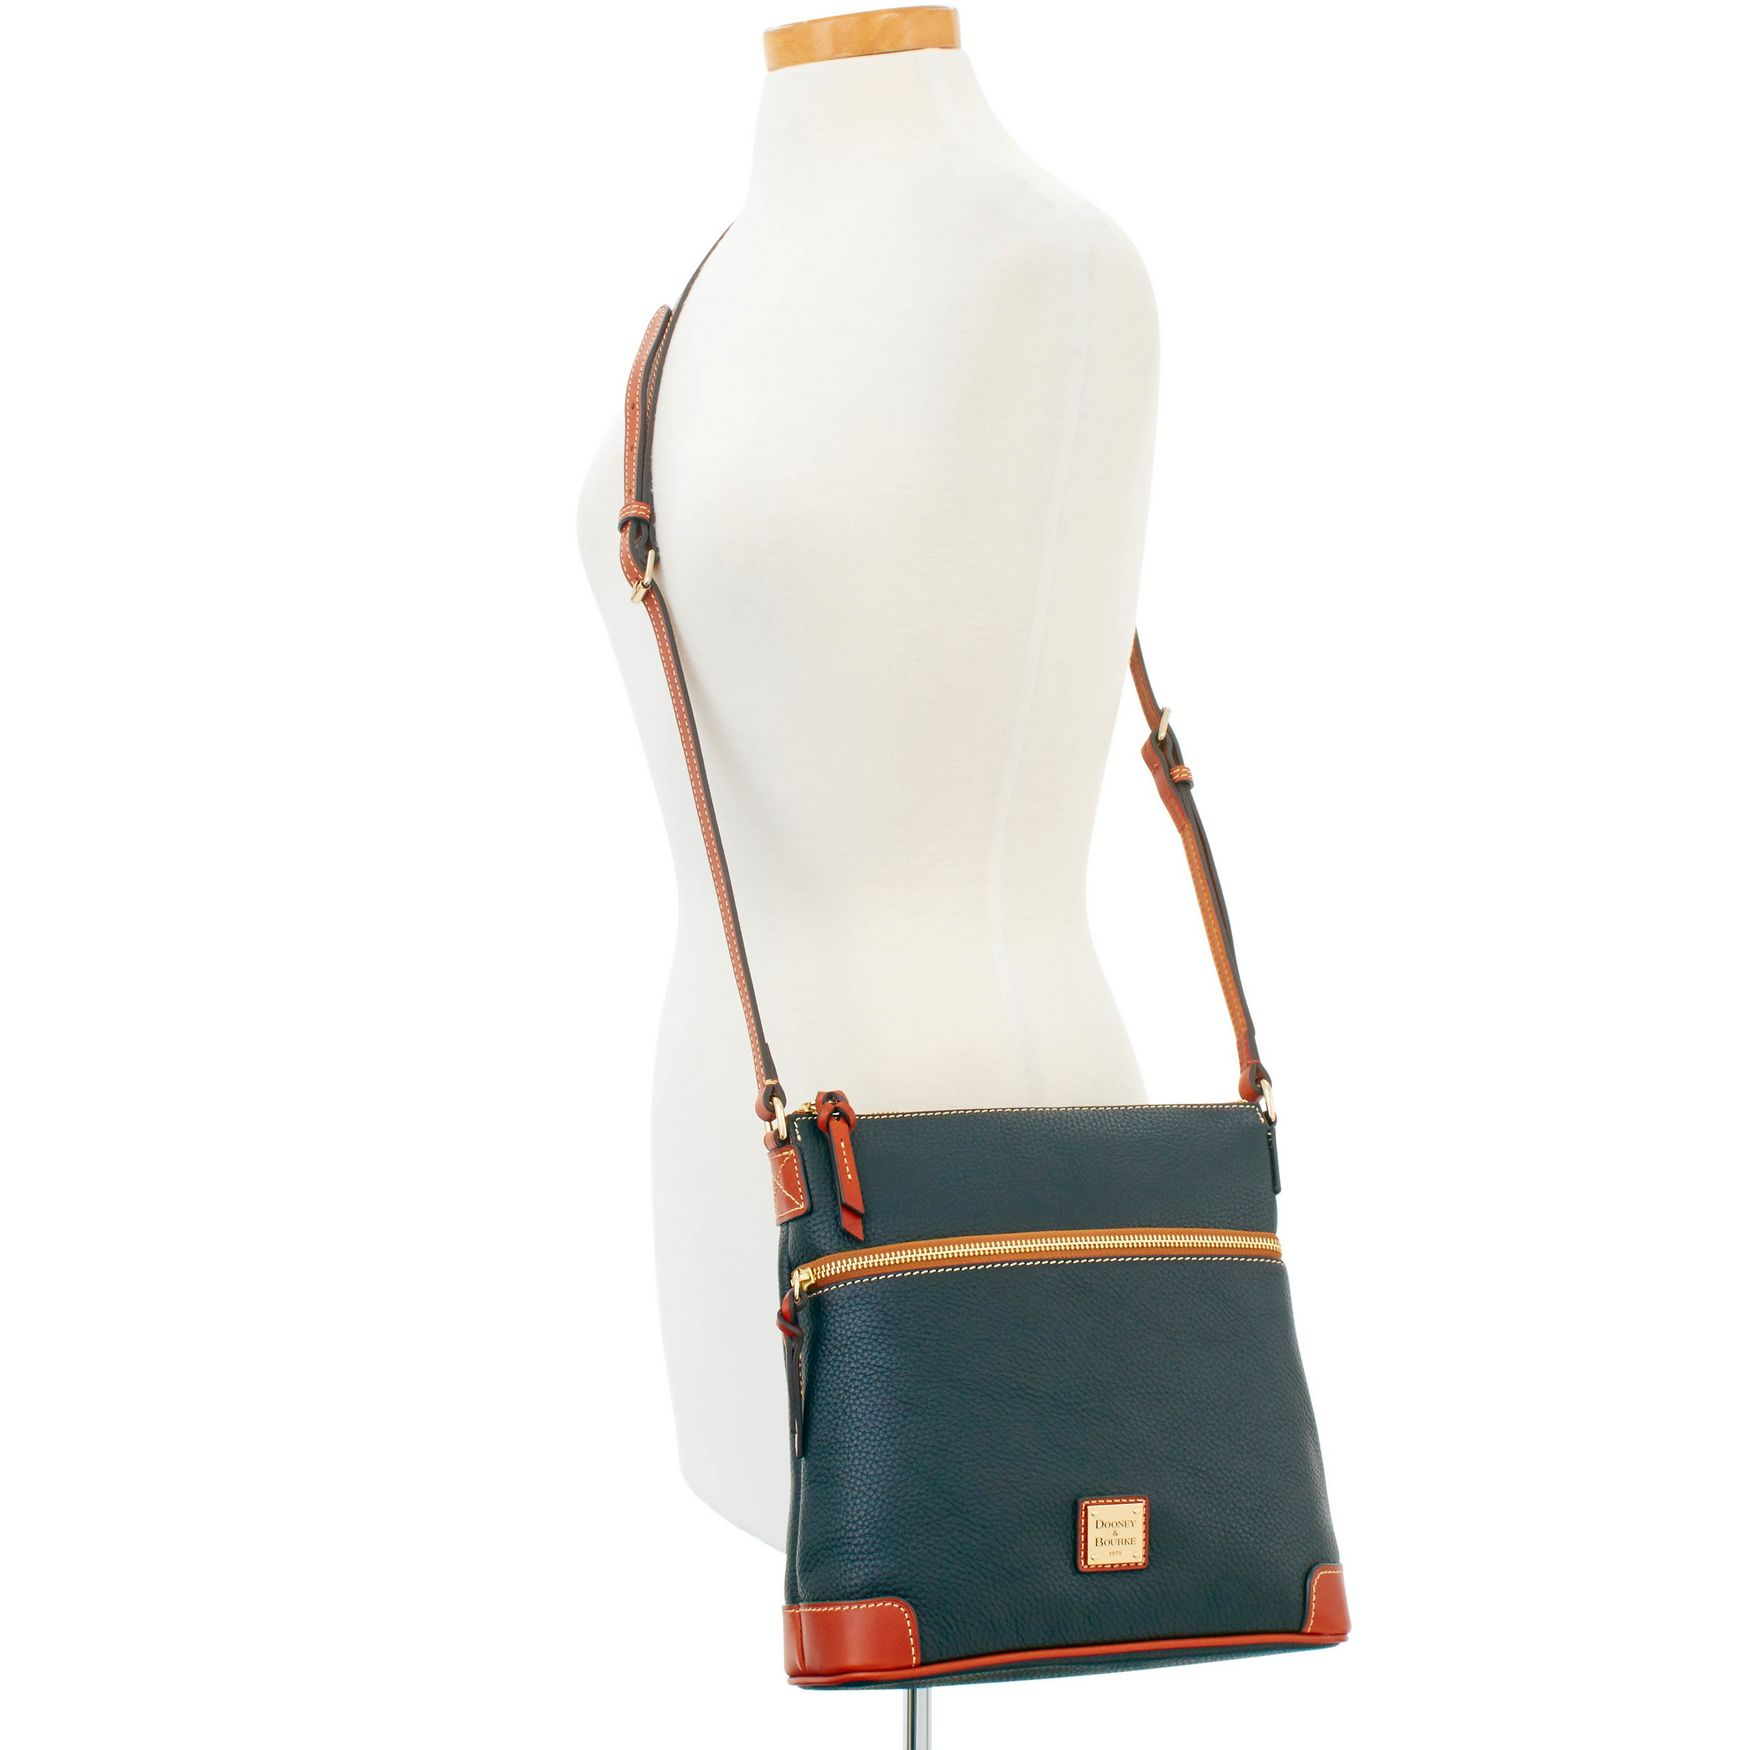 Dooney-amp-Bourke-Pebble-Grain-Crossbody-Medium-Wristlet-Shoulder-Bag thumbnail 10